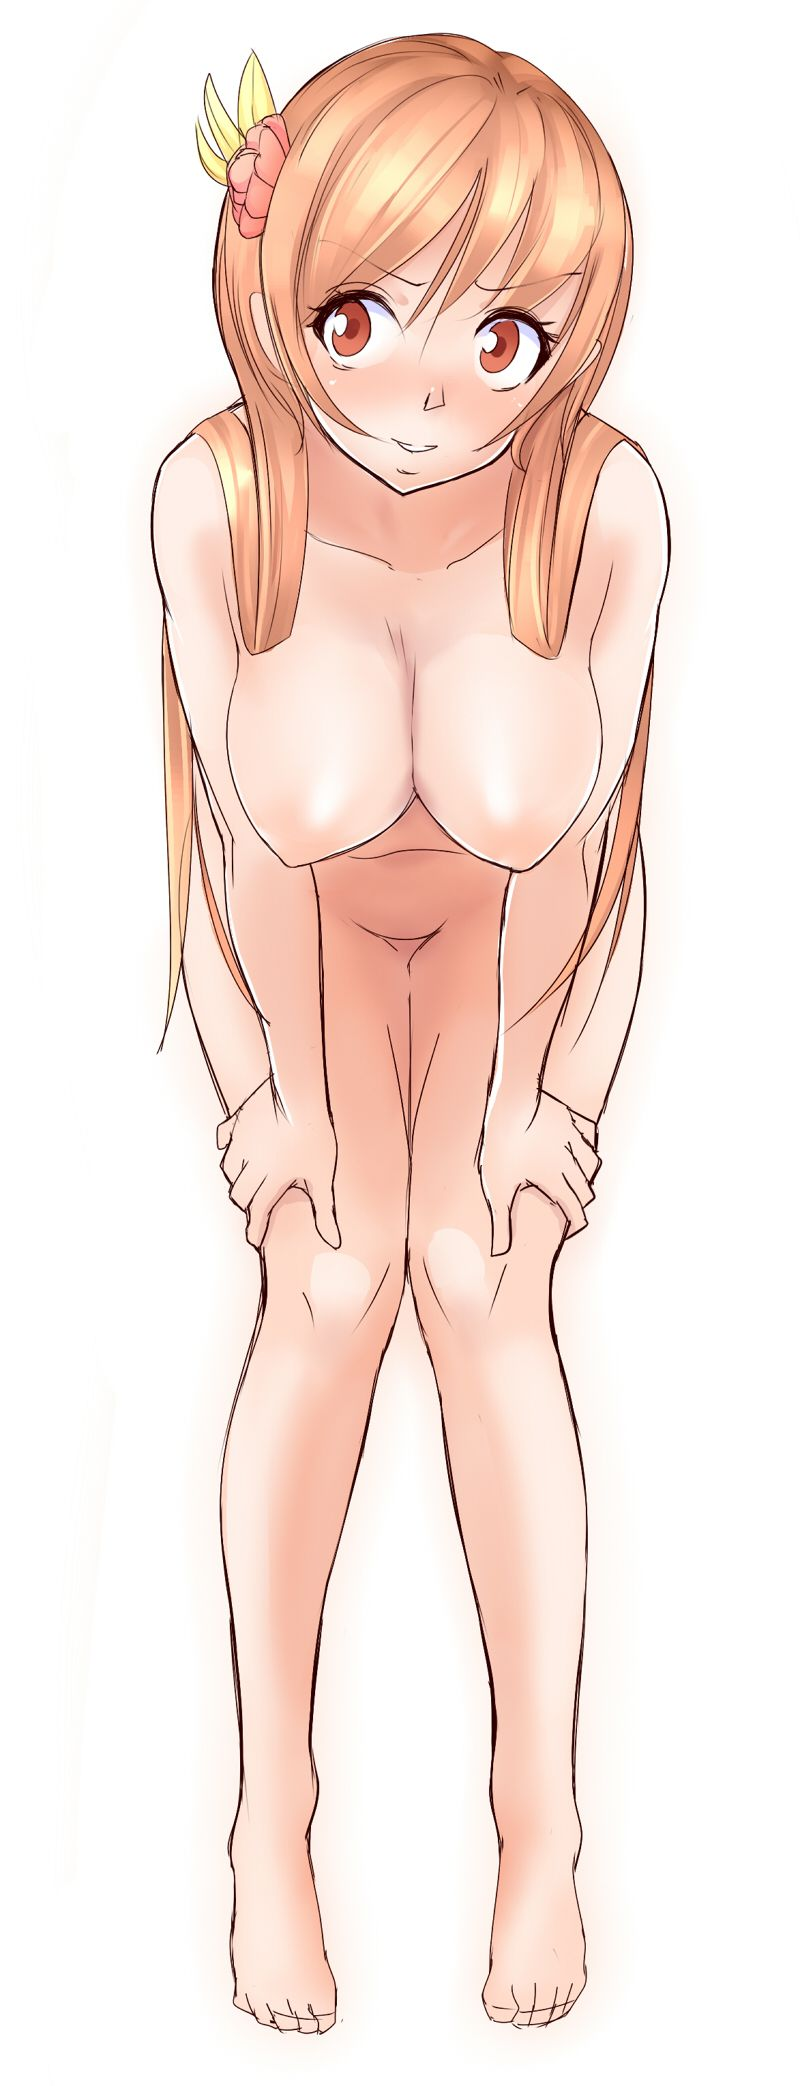 hanging_breasts leaning_forward304